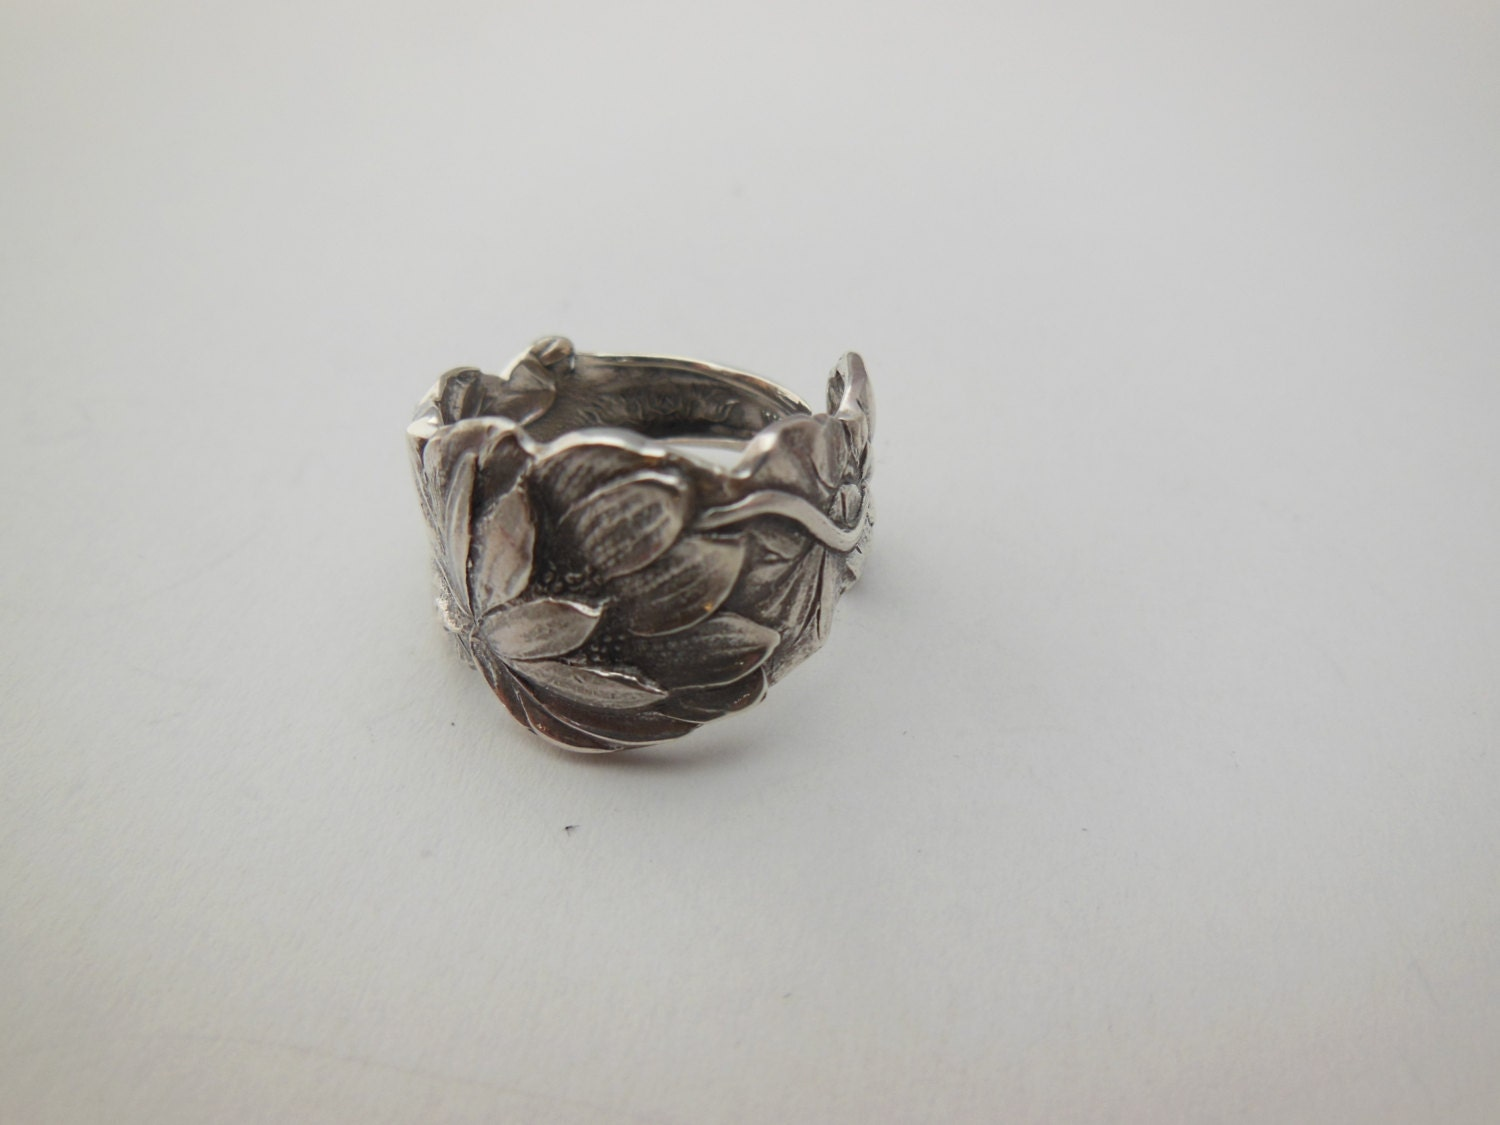 antique spoon ring size 6 and a half sterling silver water